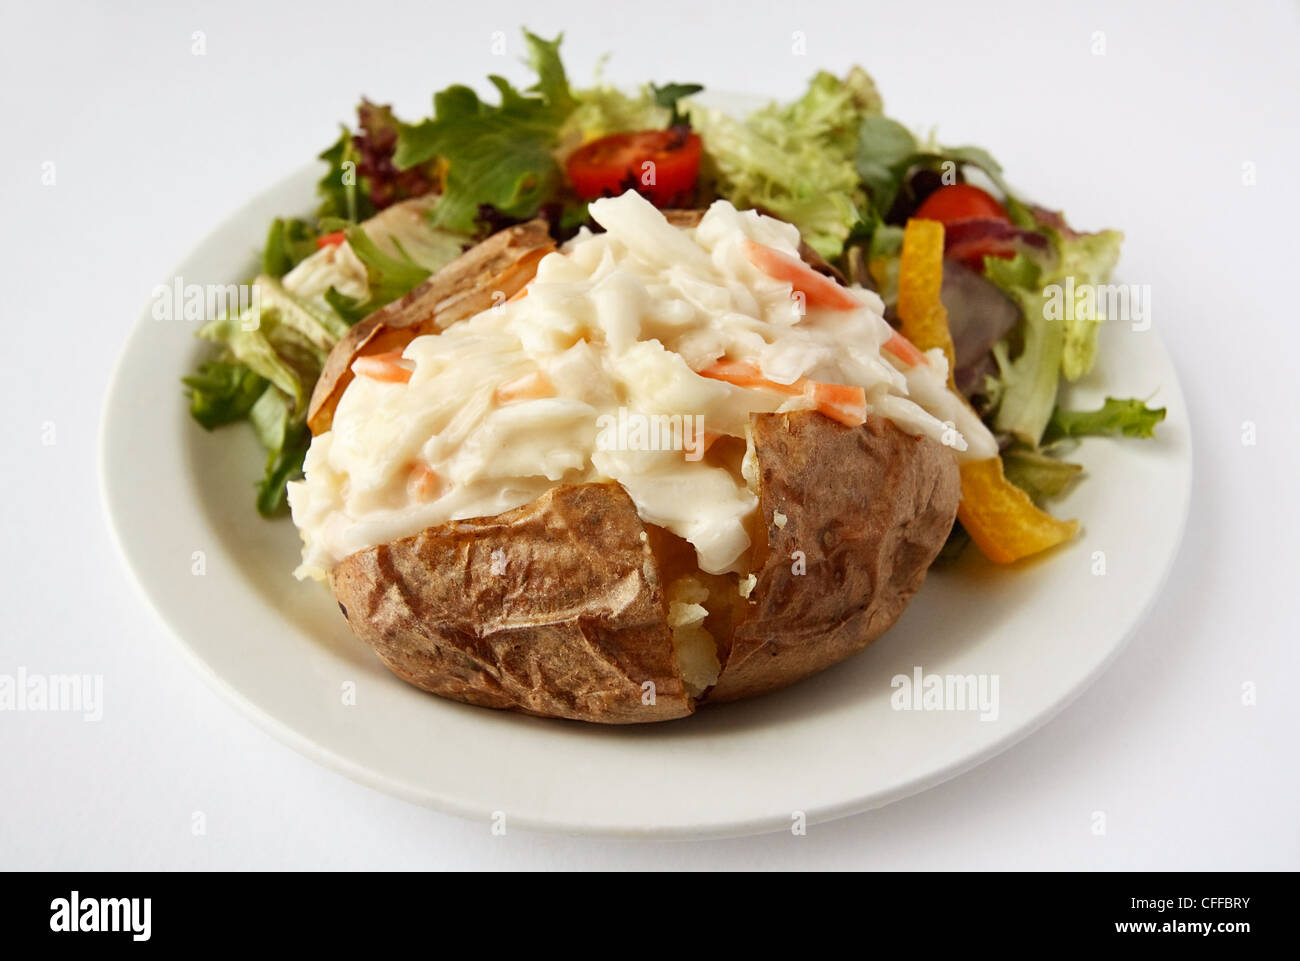 A baked potato with coleslaw filling on a plate with side salad - Stock Image